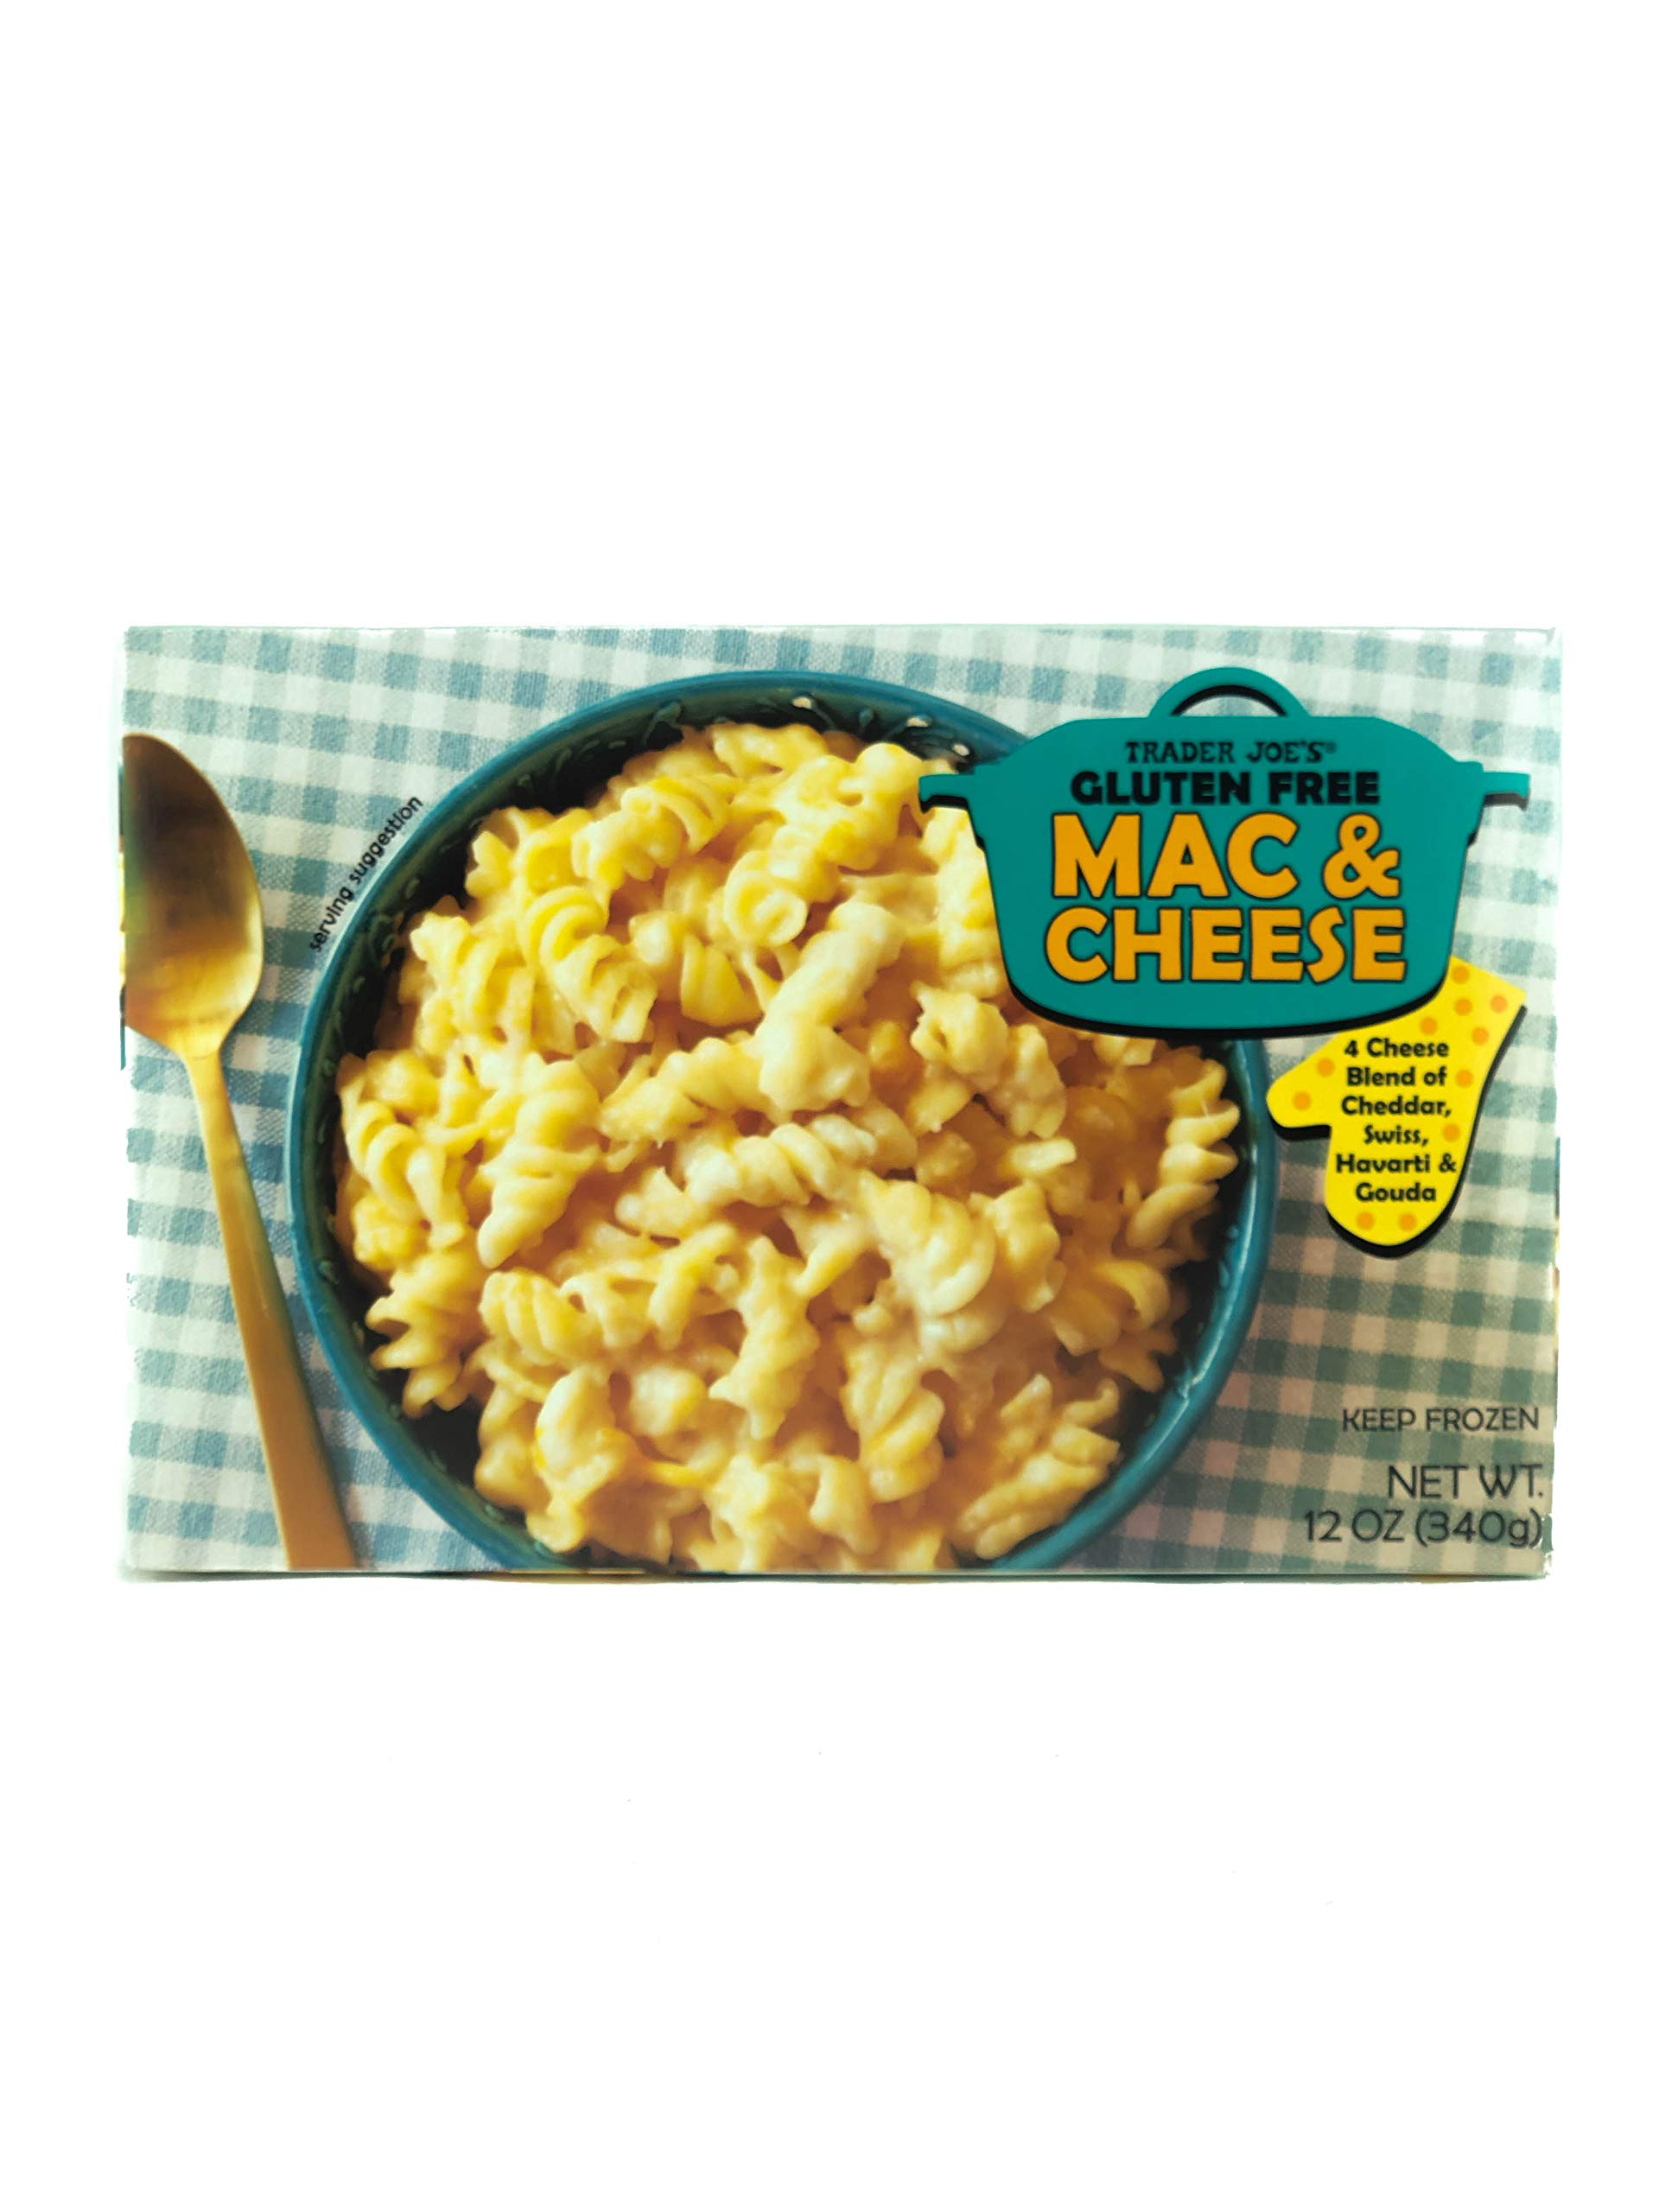 Trader Joe's Gluten Free Mac & Cheese (6 Pack) by Trader Joe's Grocery